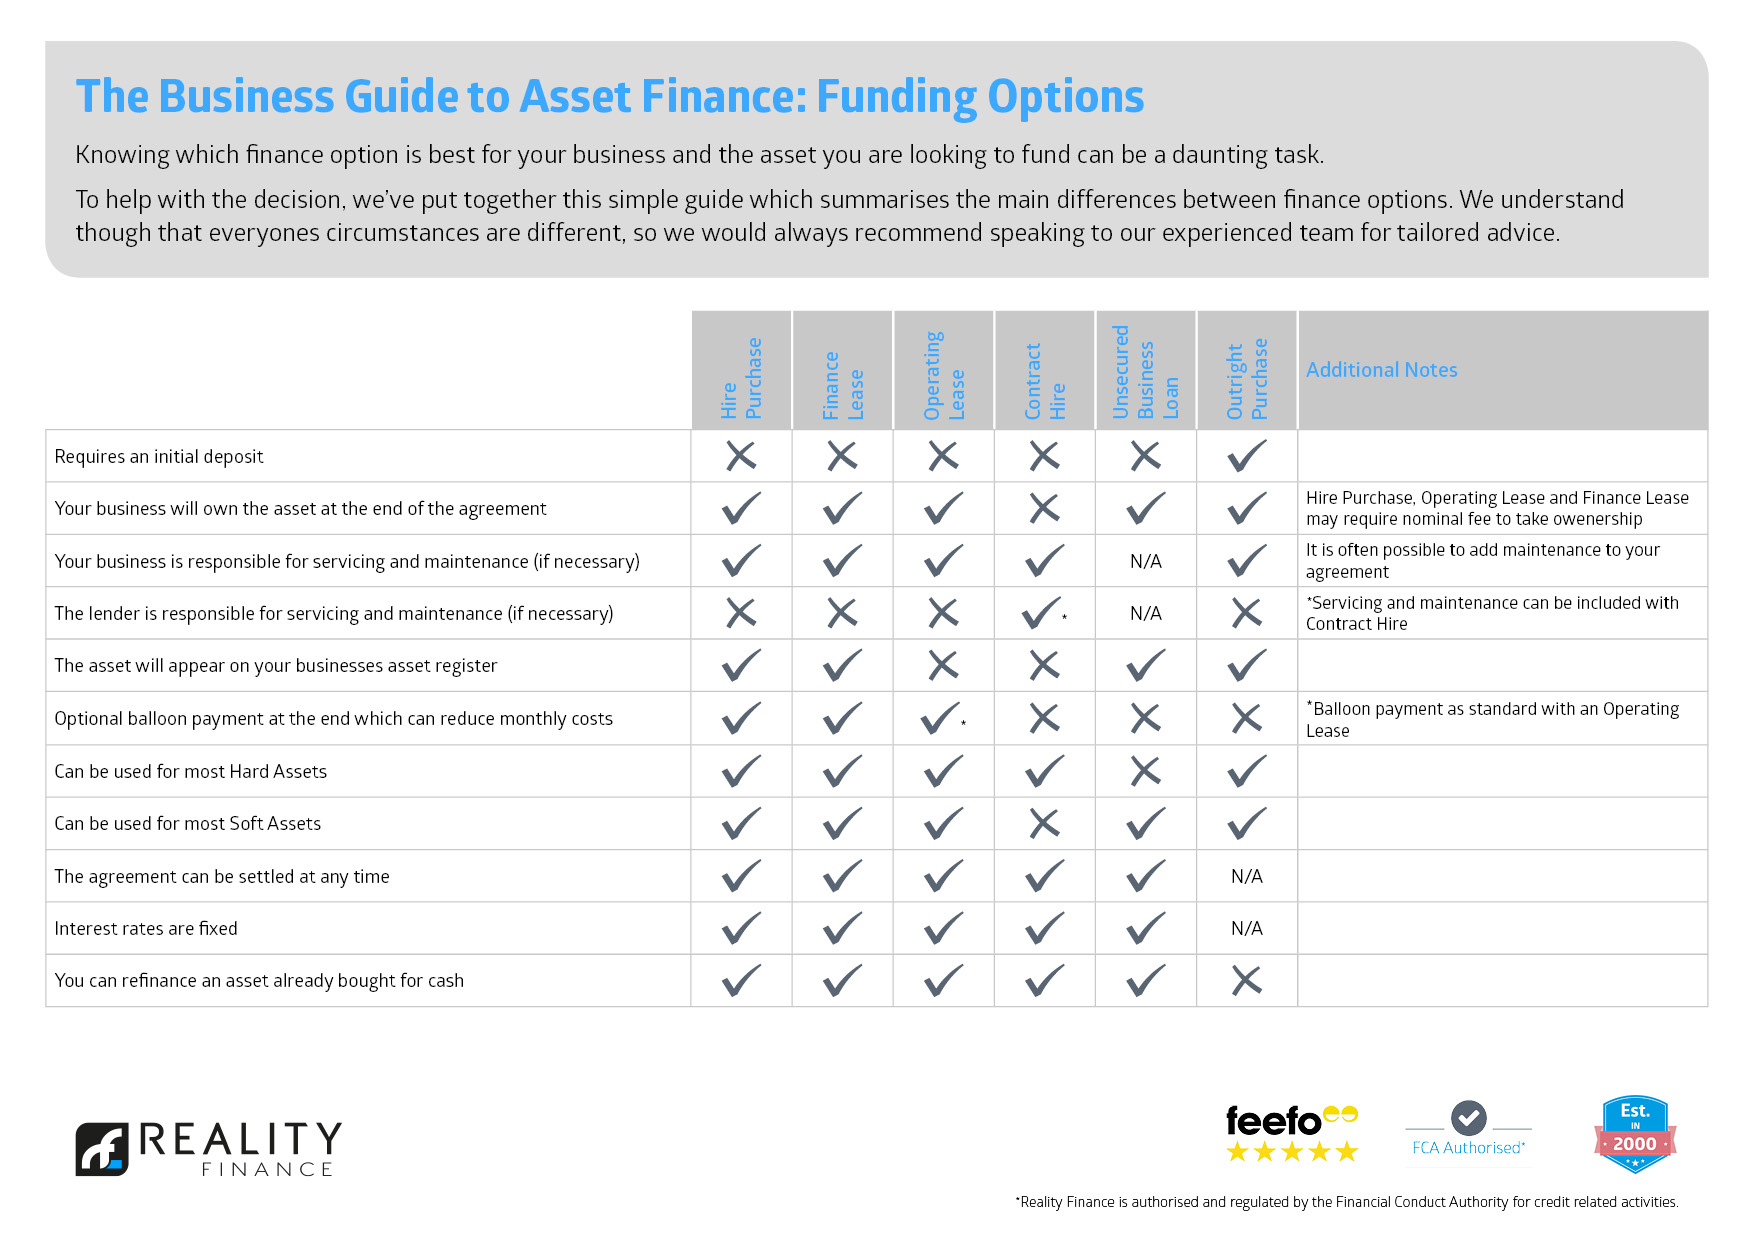 The Business Guide to Asset Finance Funding Options